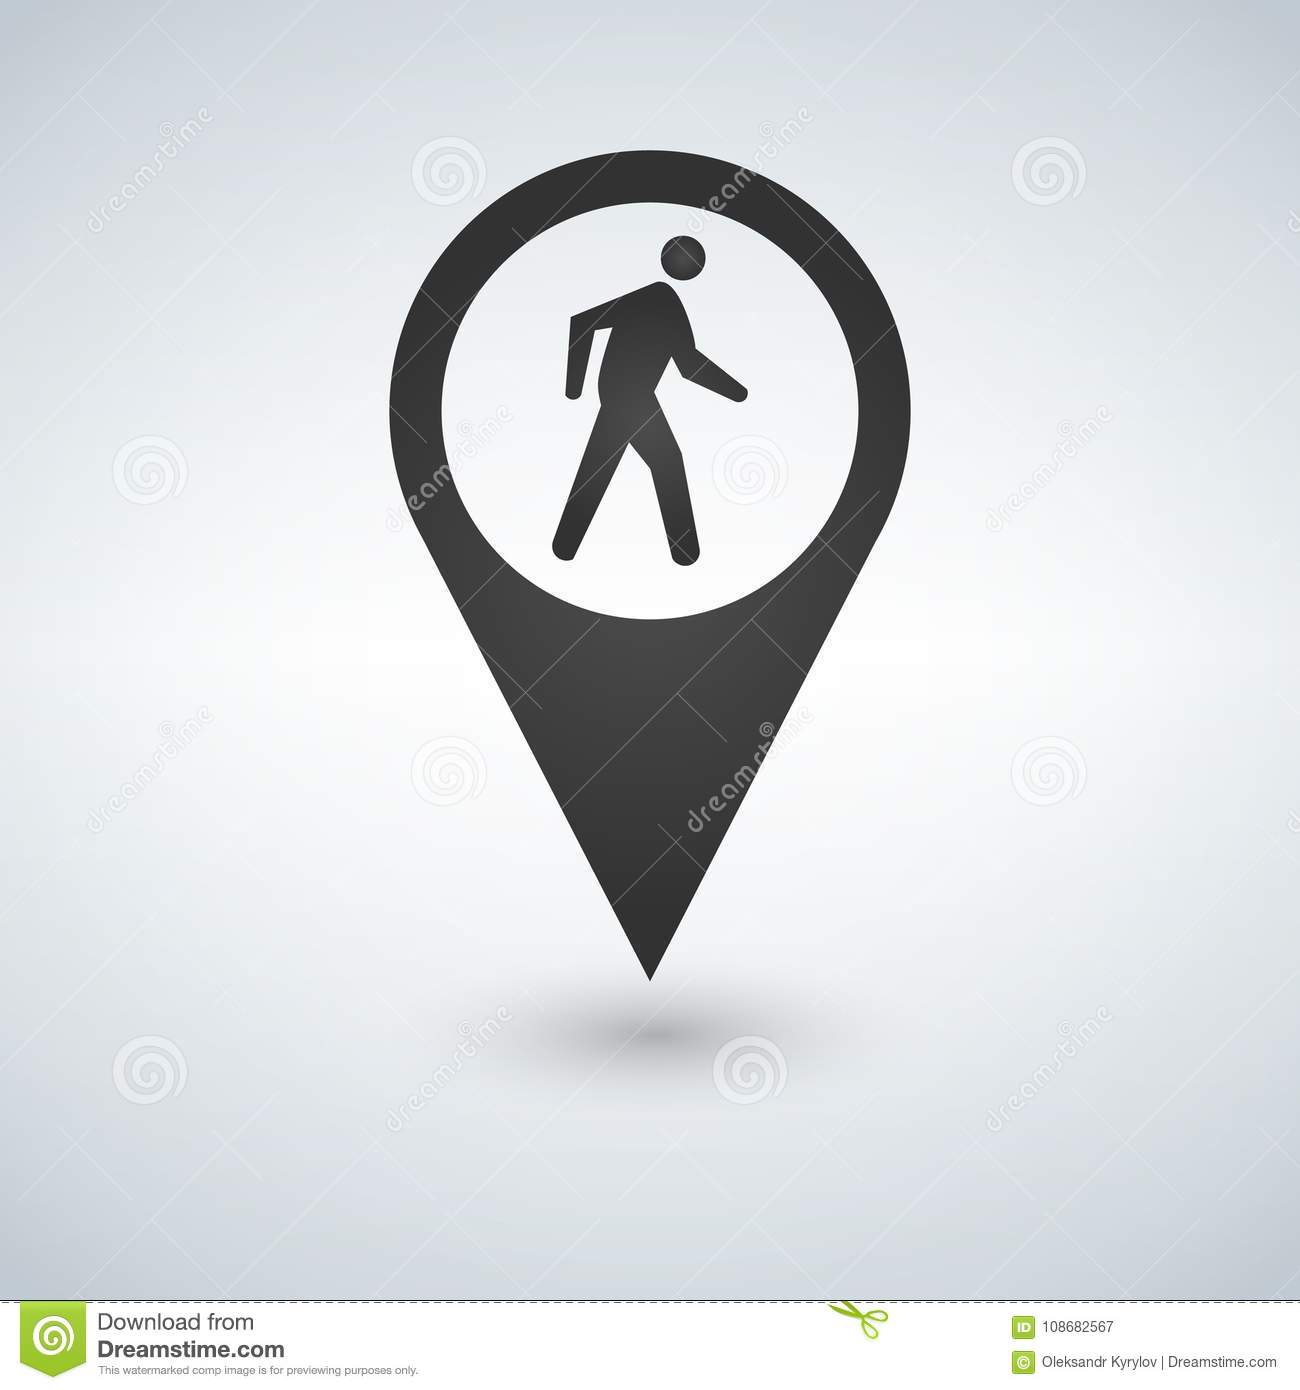 Common pedestrian icon. Man walking by foot map pointer. For maps, schemes, applications and infographics.